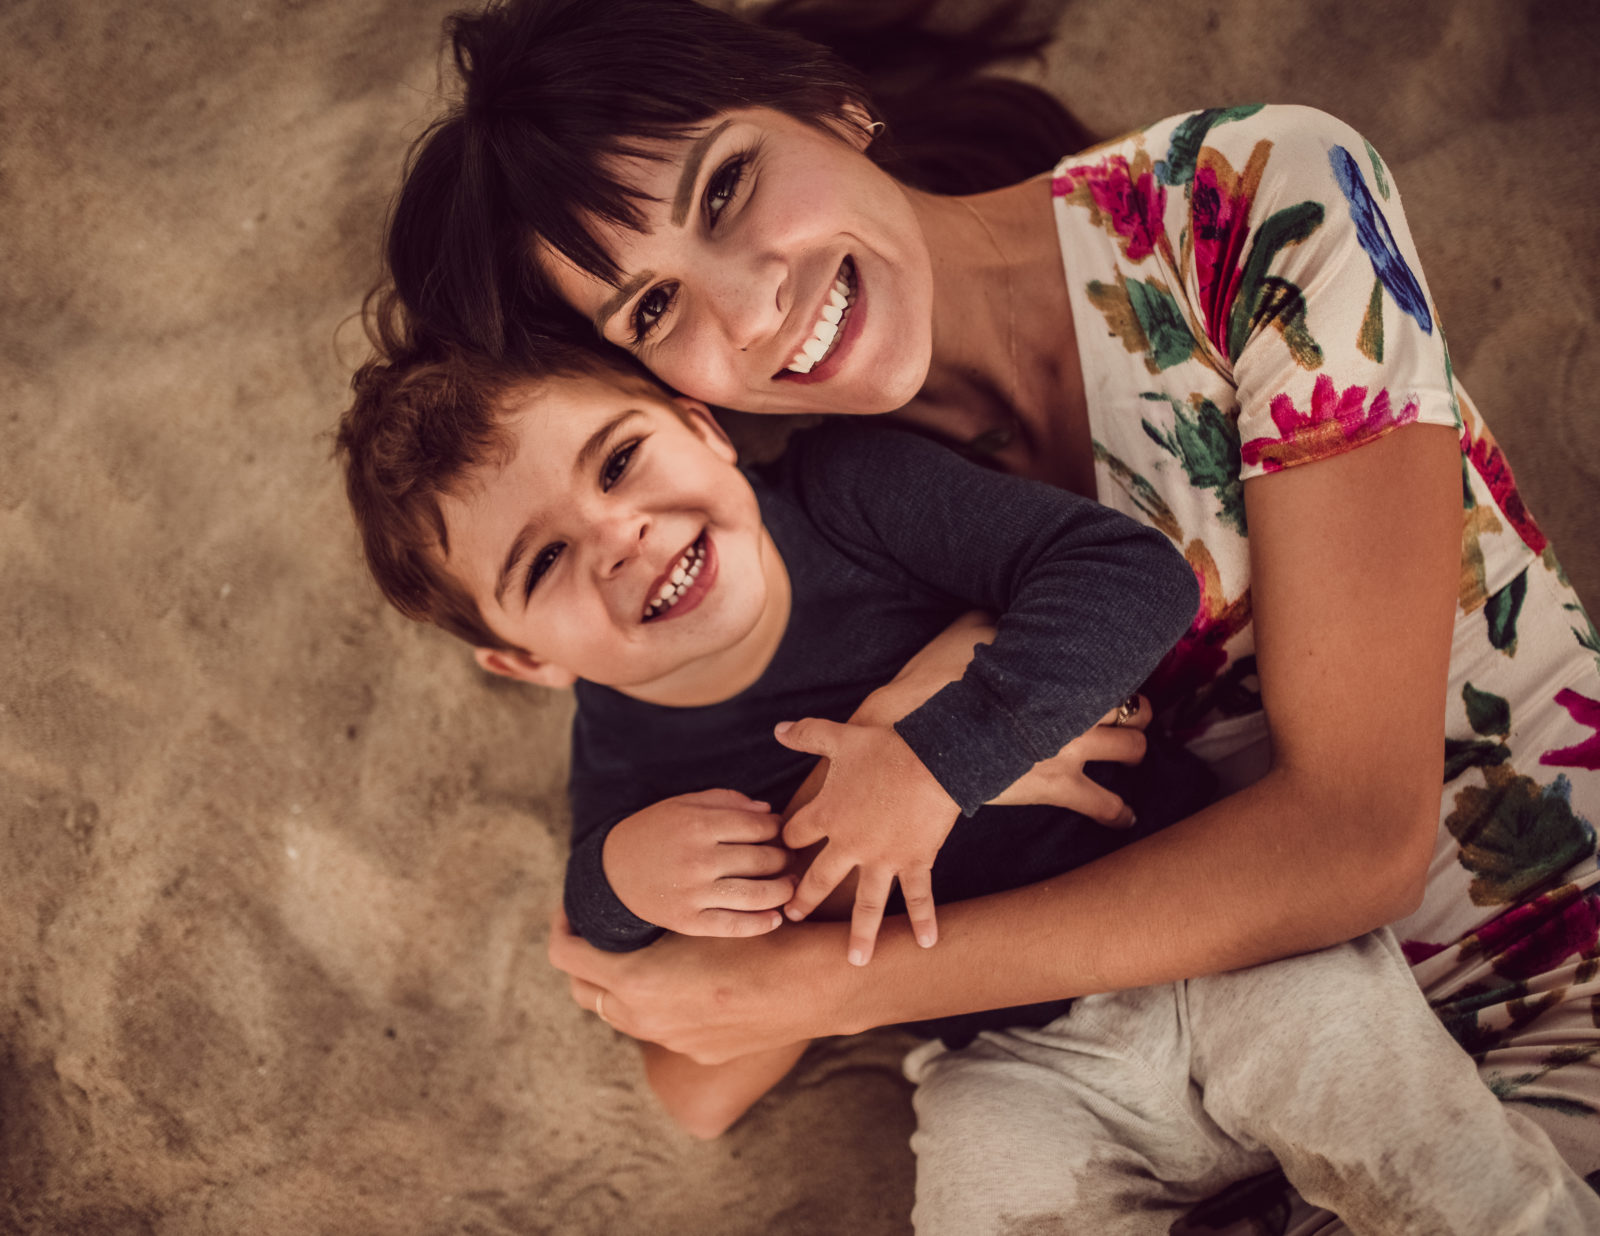 Mother and son captured from above by Artshaped photography while playing in the sand during their family photo session in Santa Monica, California.